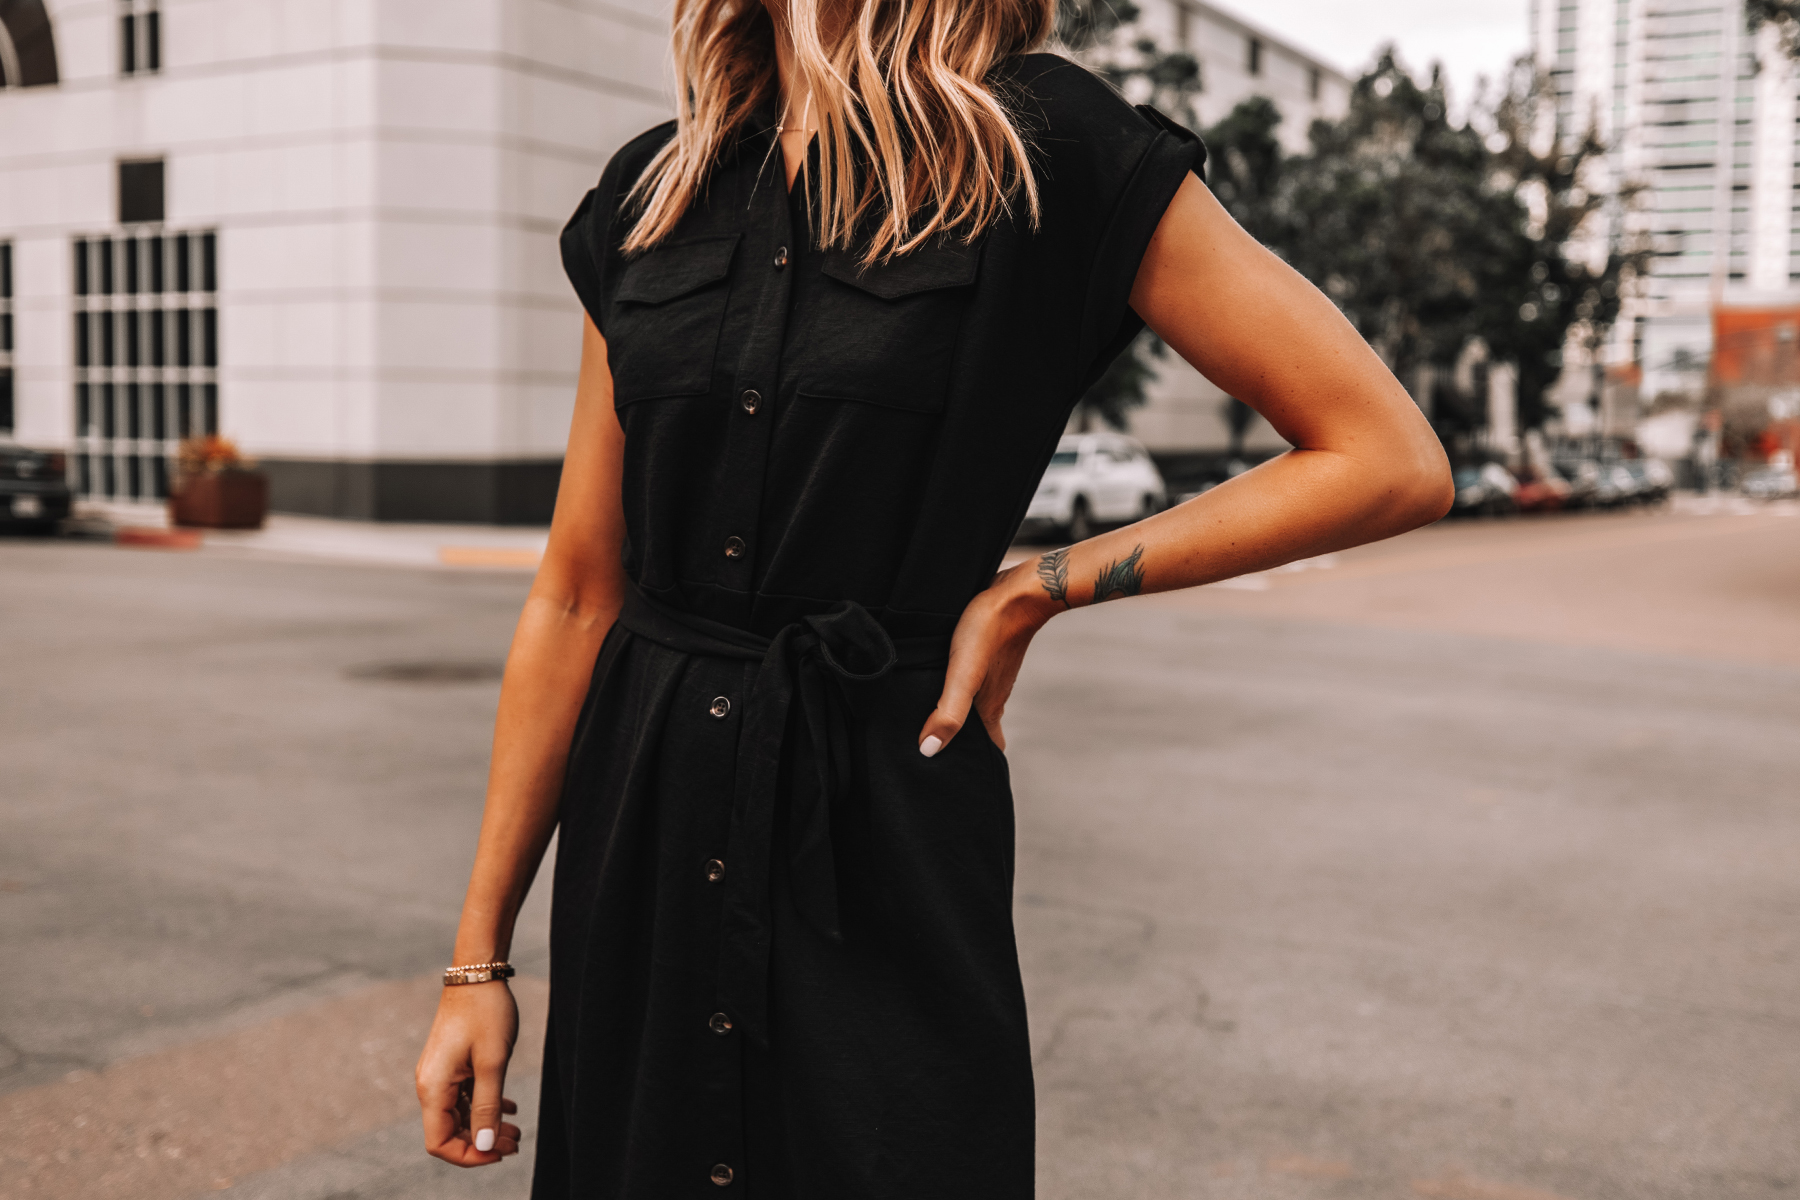 Fashion Jackson Wearing Ann Taylor Black Belted Shirt Dress Workwear Outfit